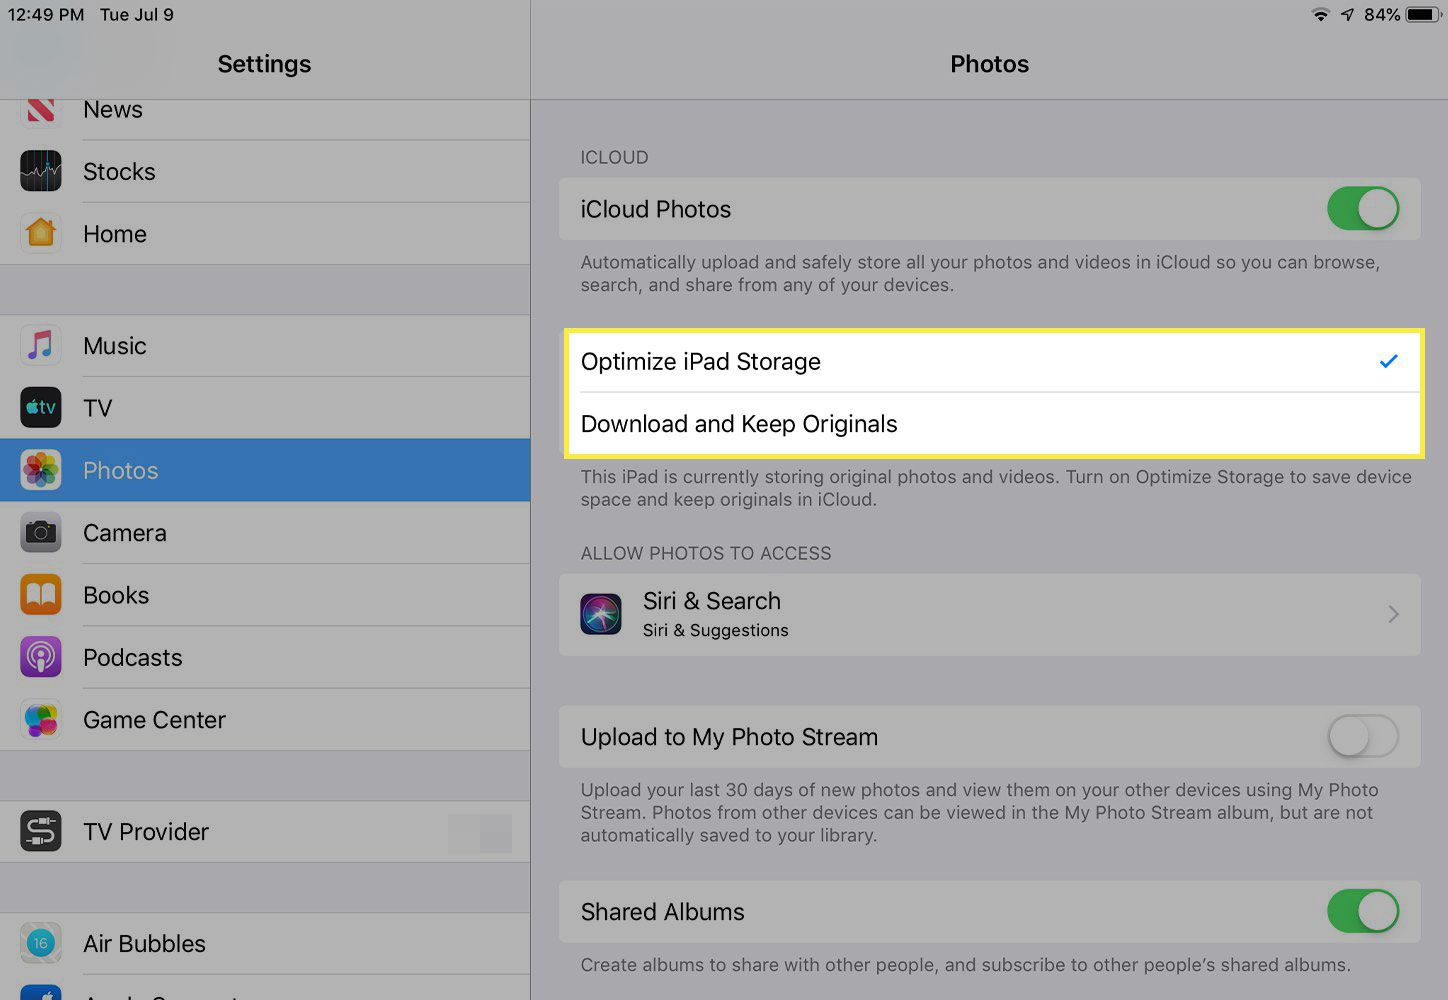 A screenshot of iPad Photos settings with the Optimize iPad Storage and Download and Keep Originals options highlighted